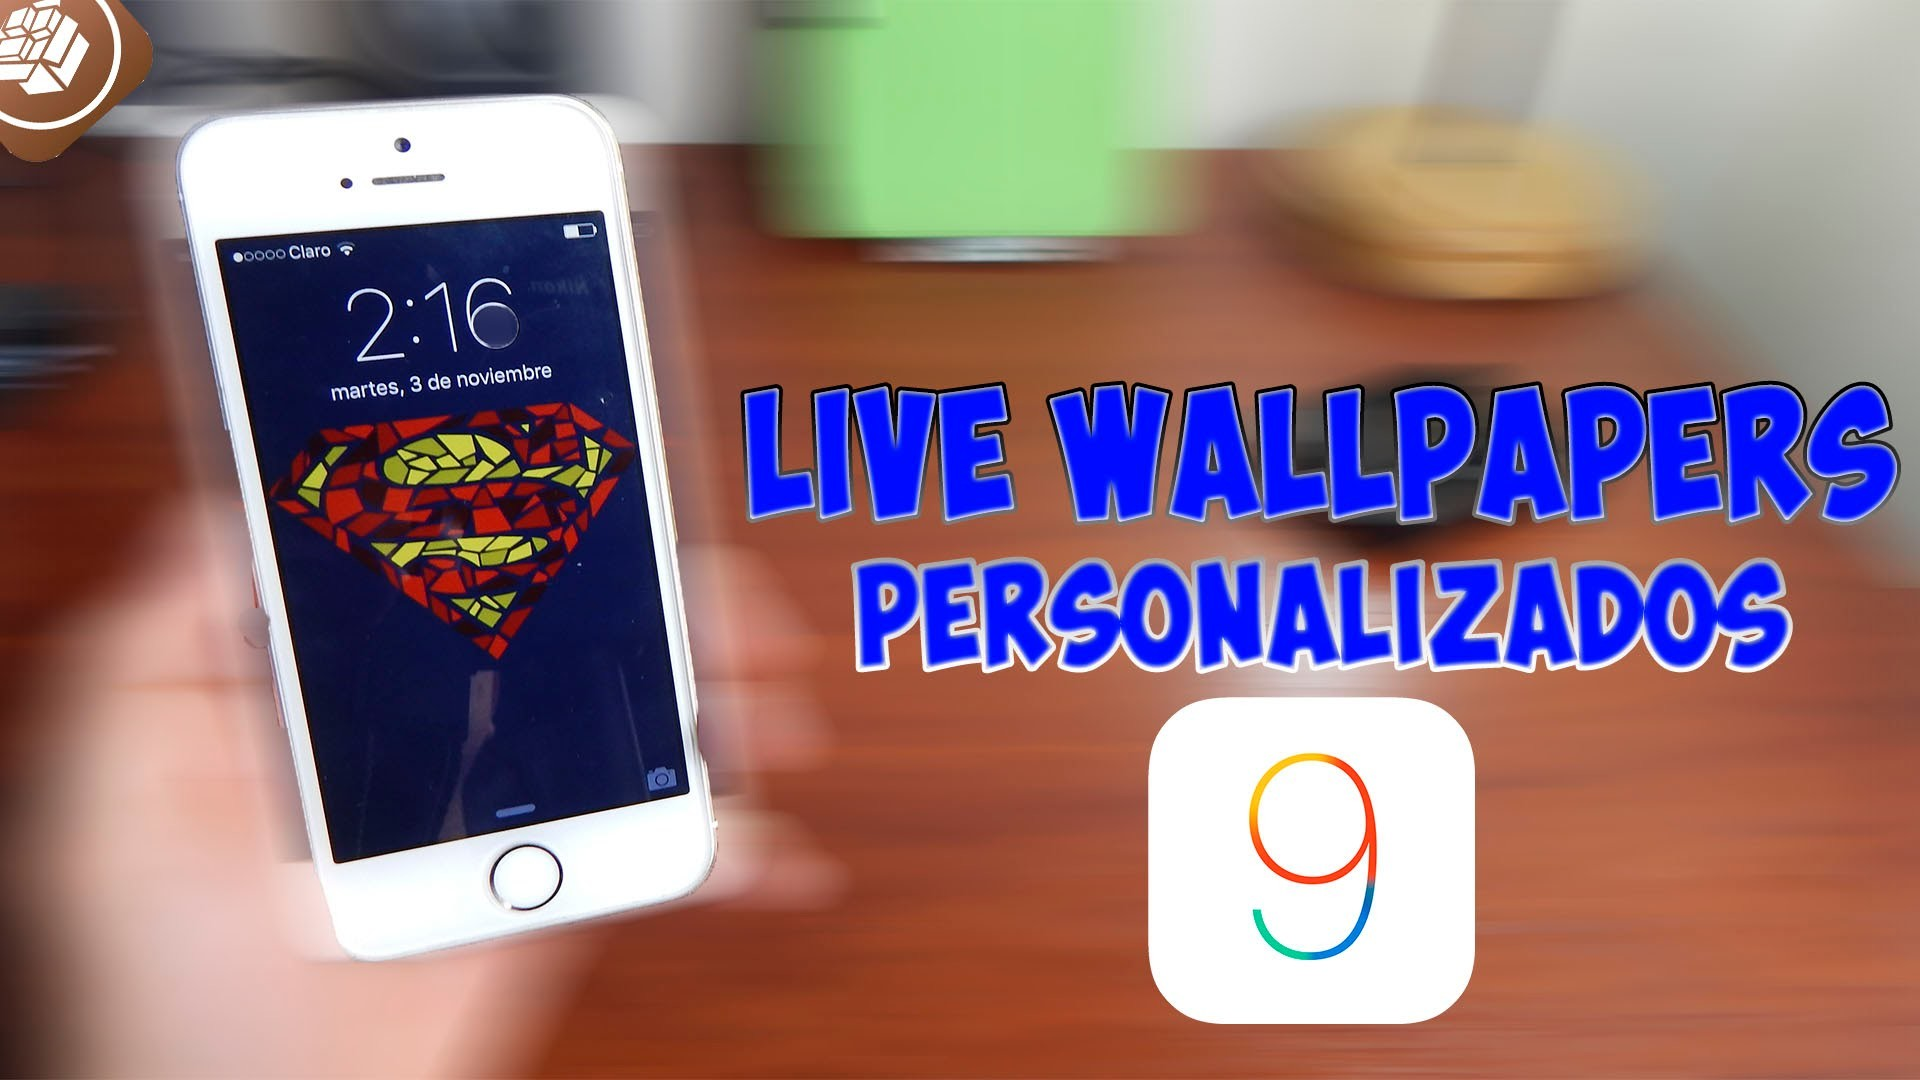 Live Wallpaper for iPhone 4S (56+ images)